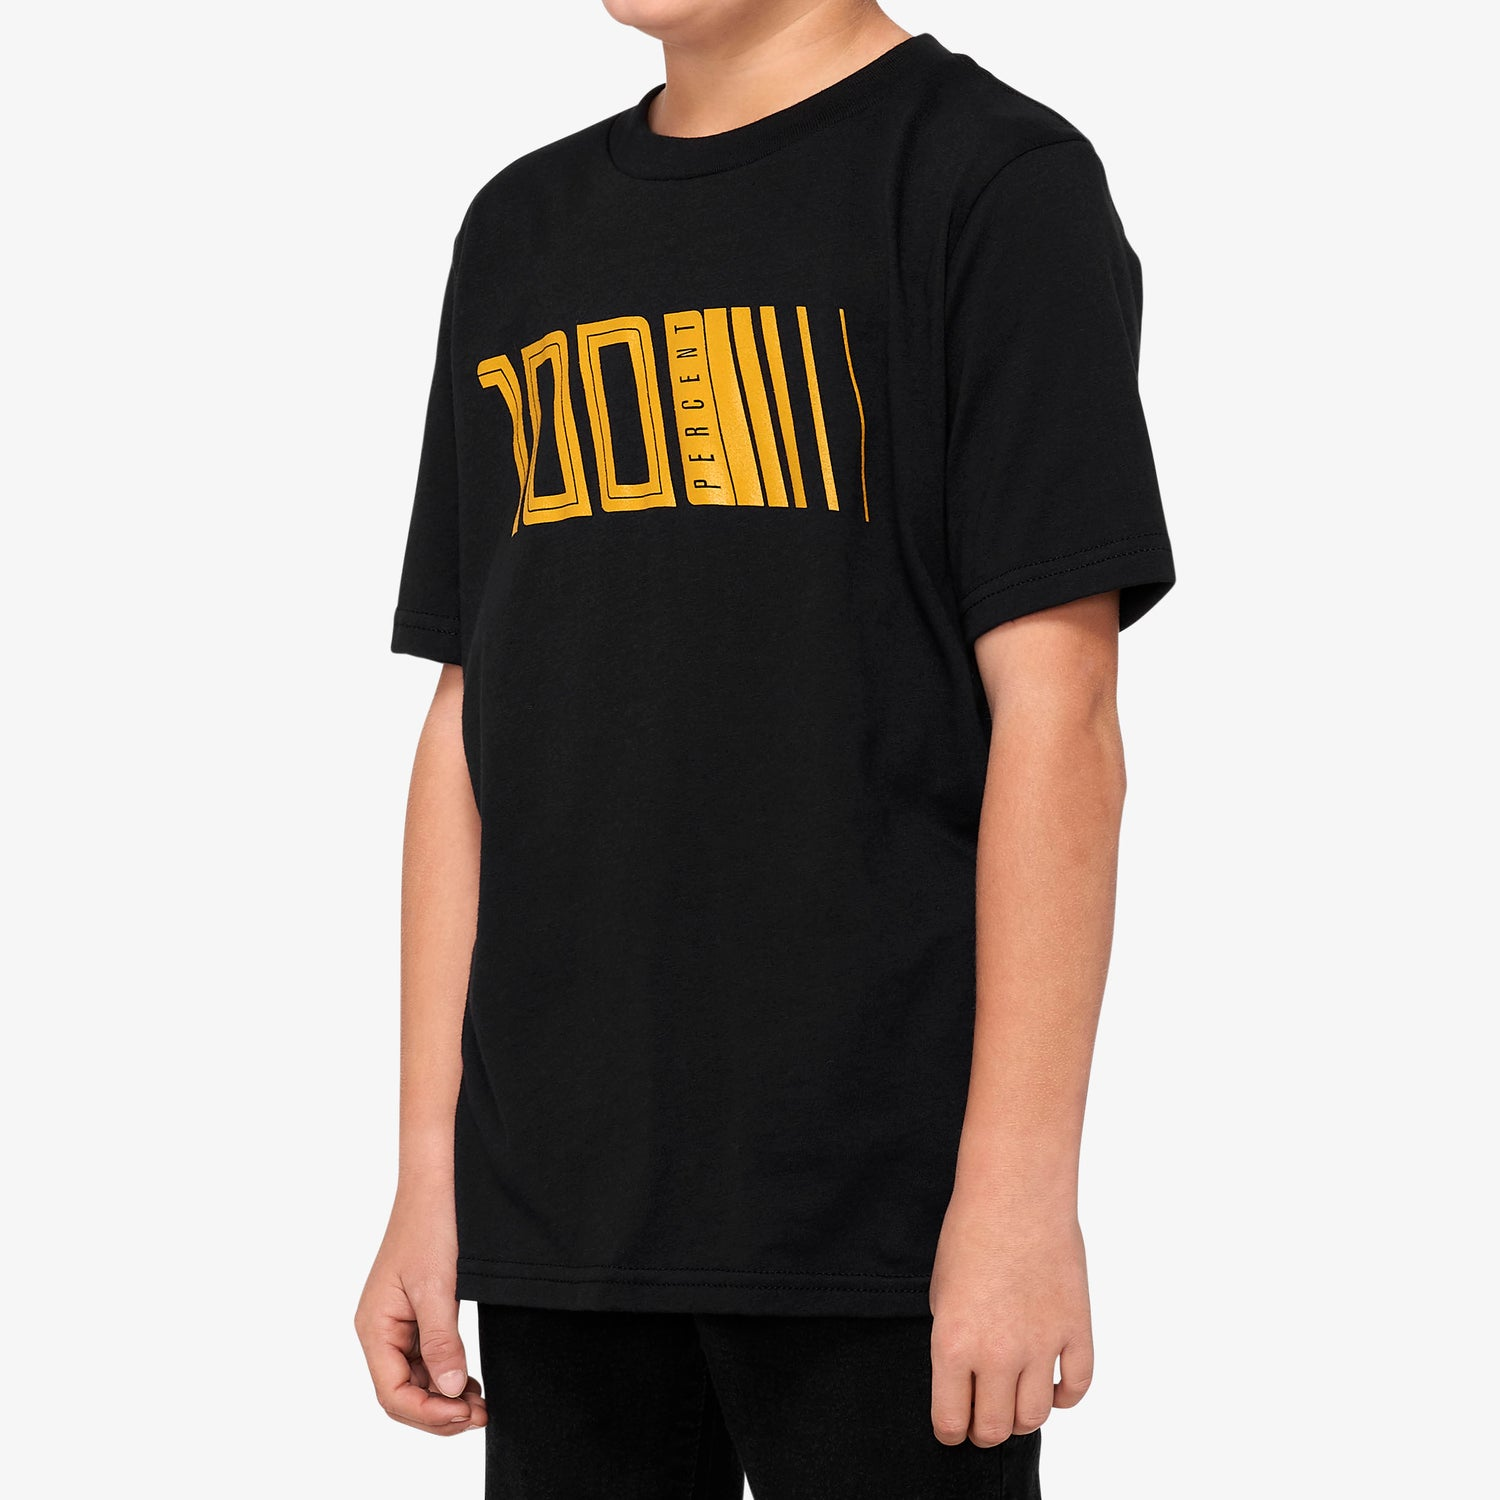 PULSE Youth T-shirt Black